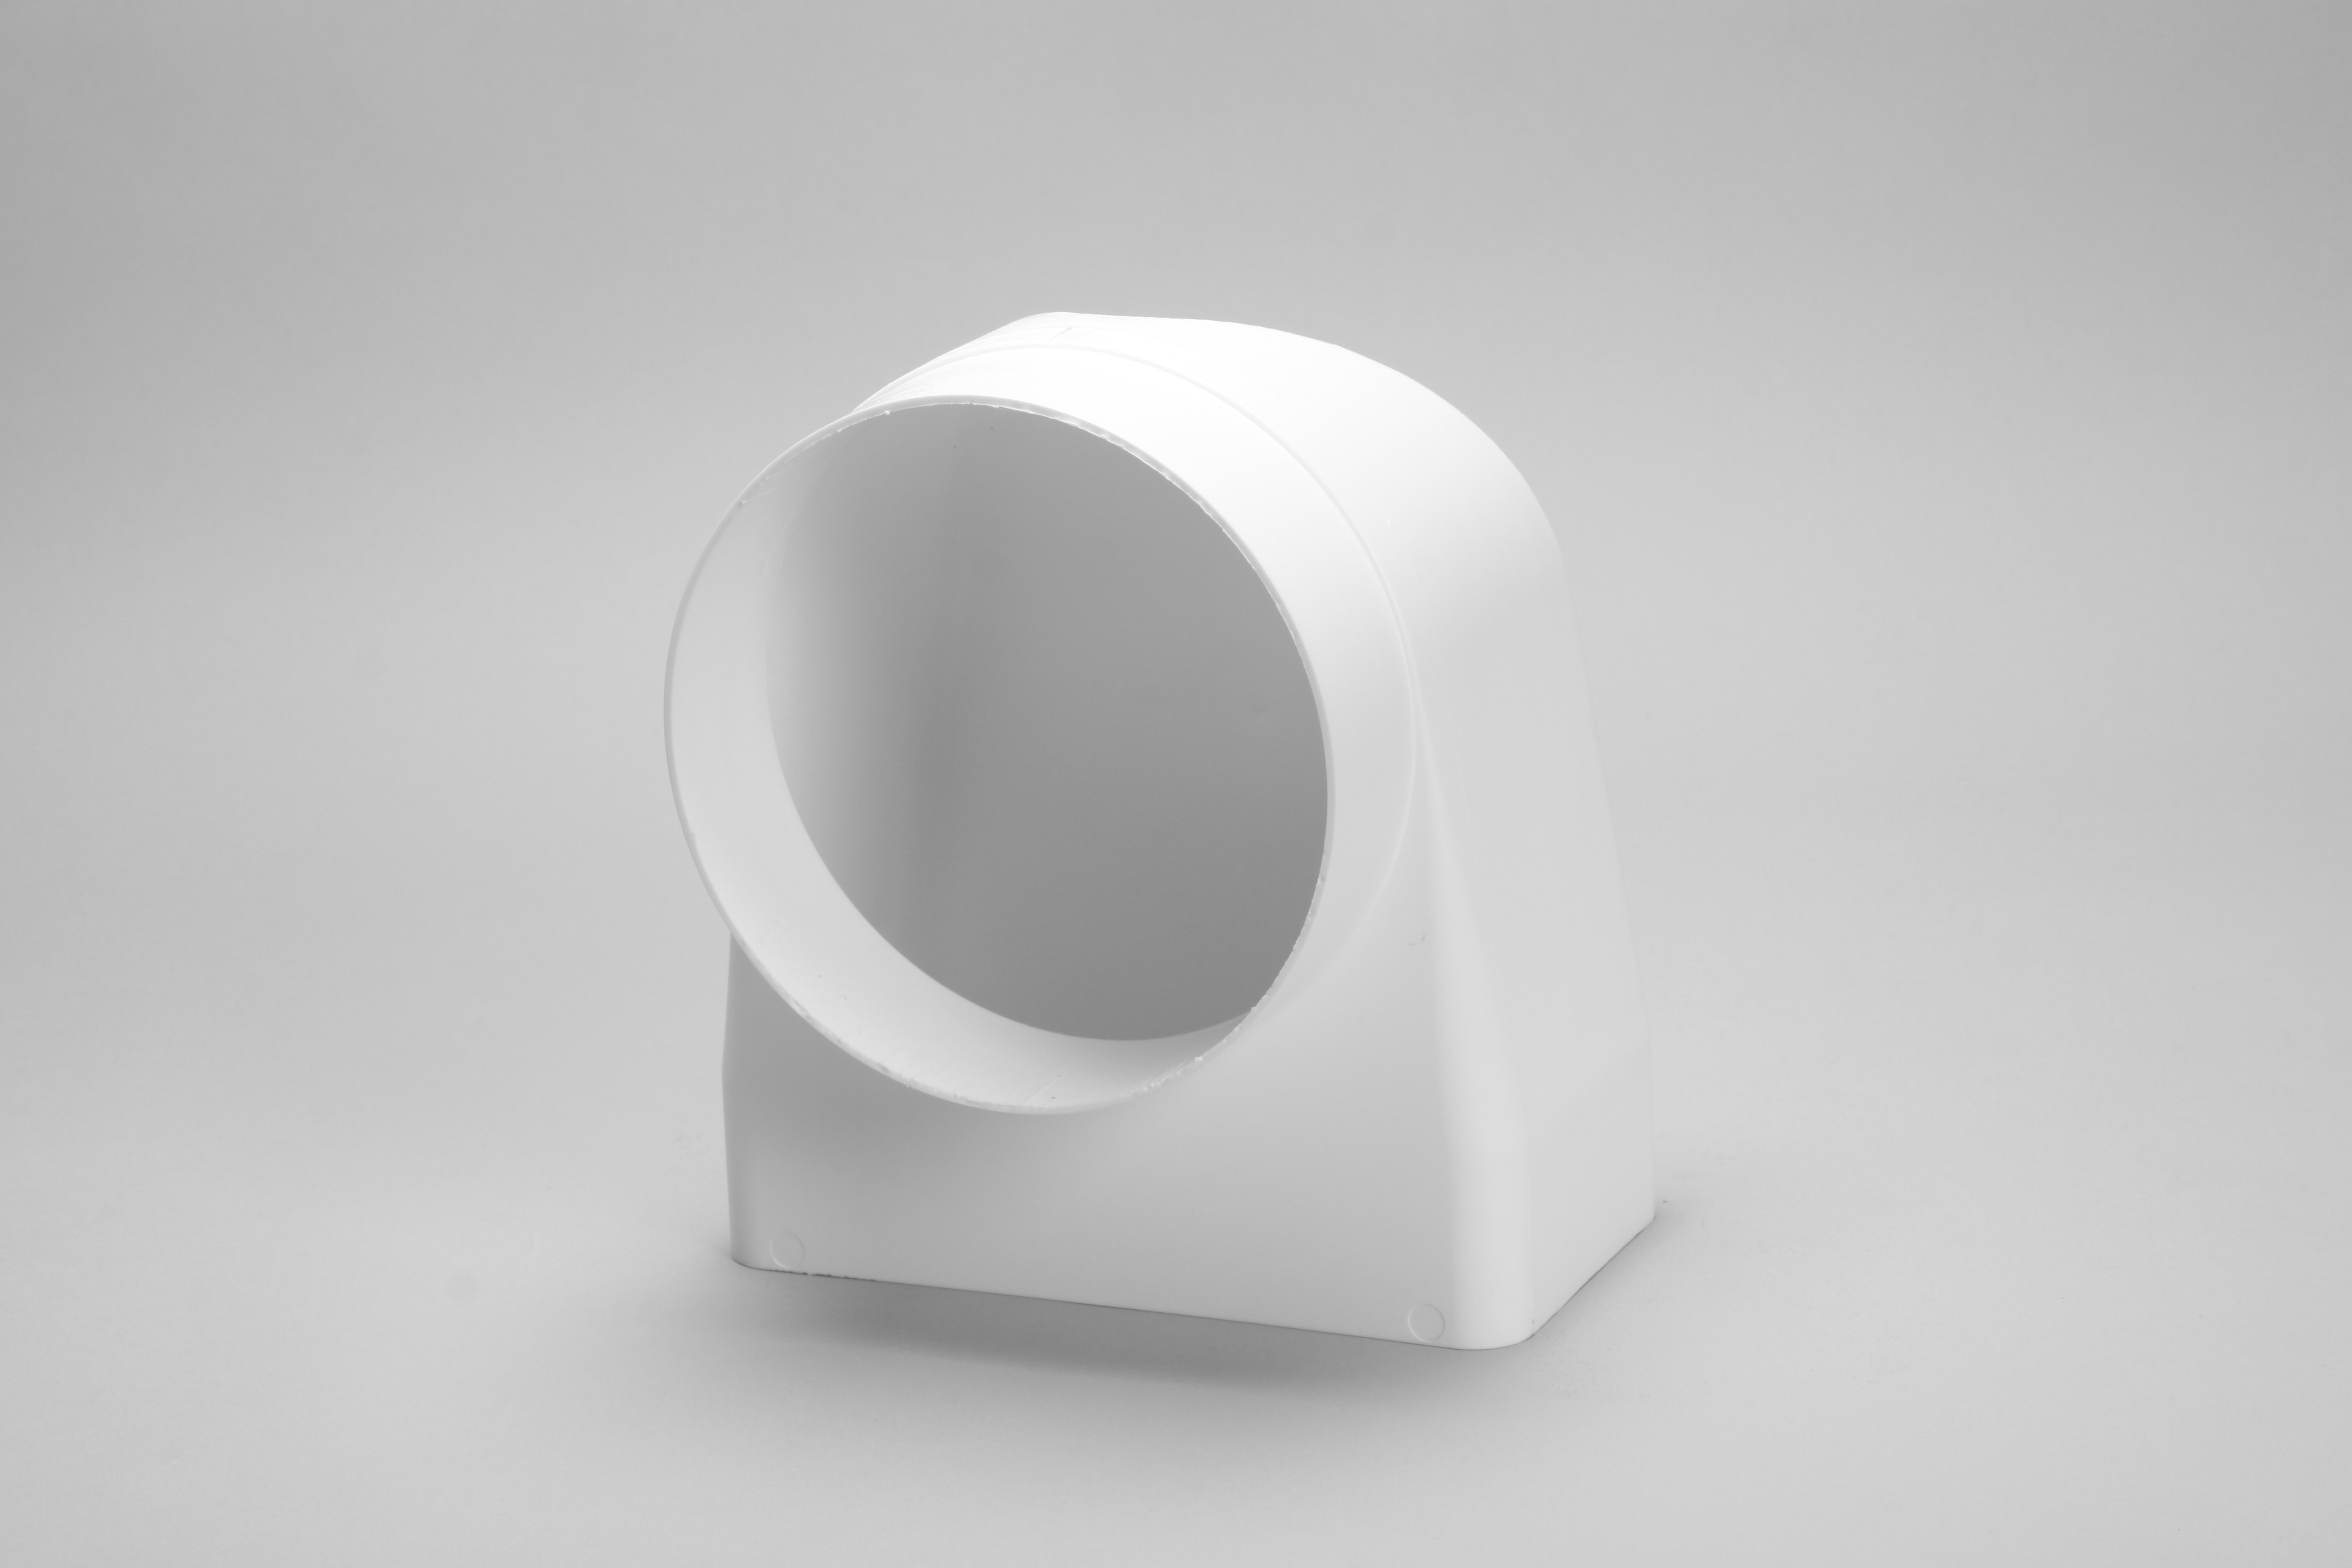 150mm round to rectangular 180mm x 95mm 90 degree bend